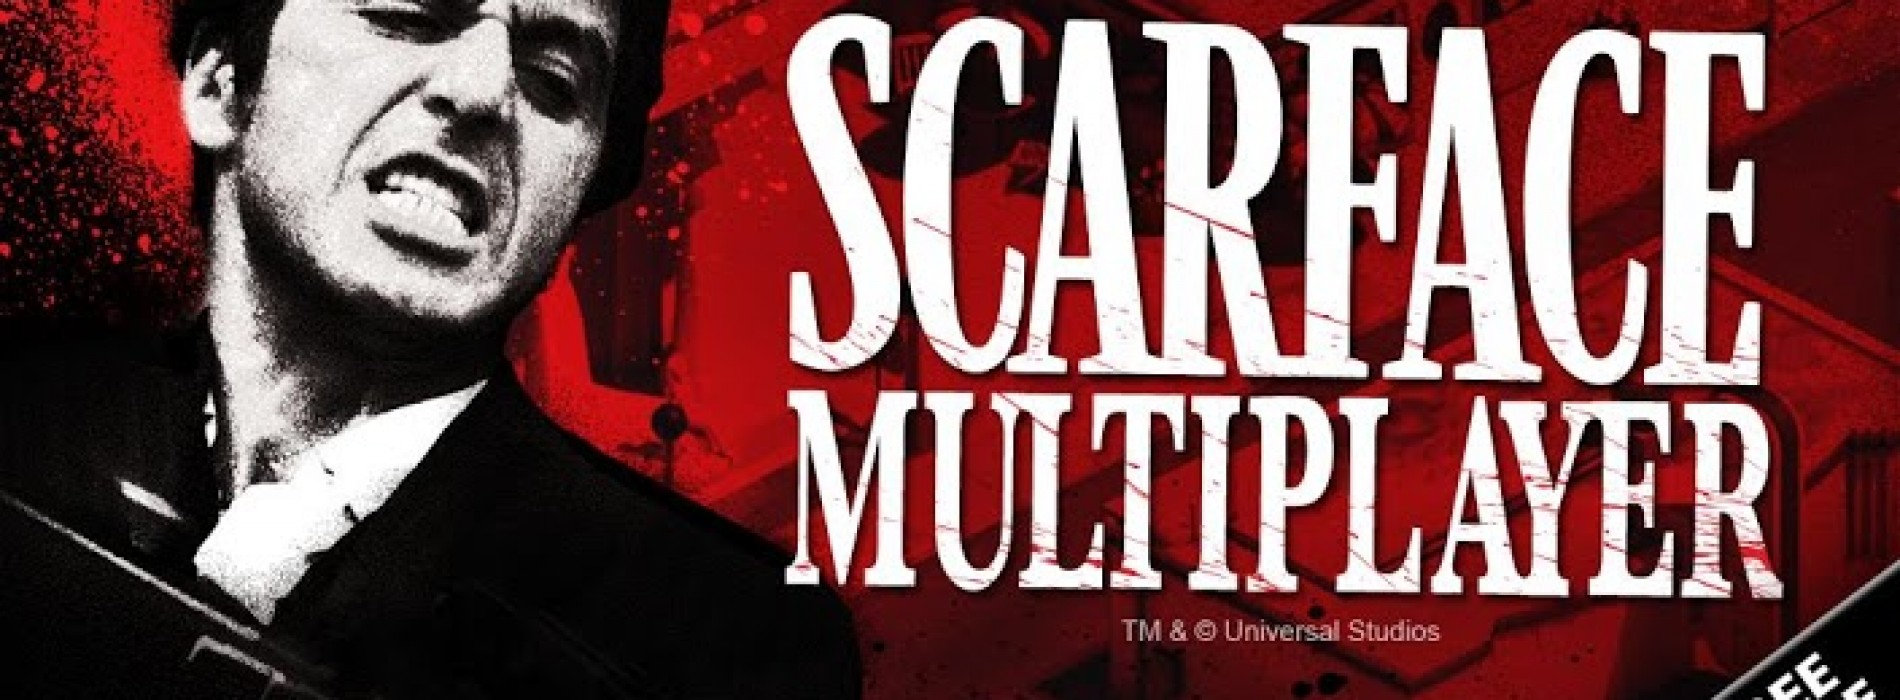 Get your Tony Montana on with Scarface Multiplayer